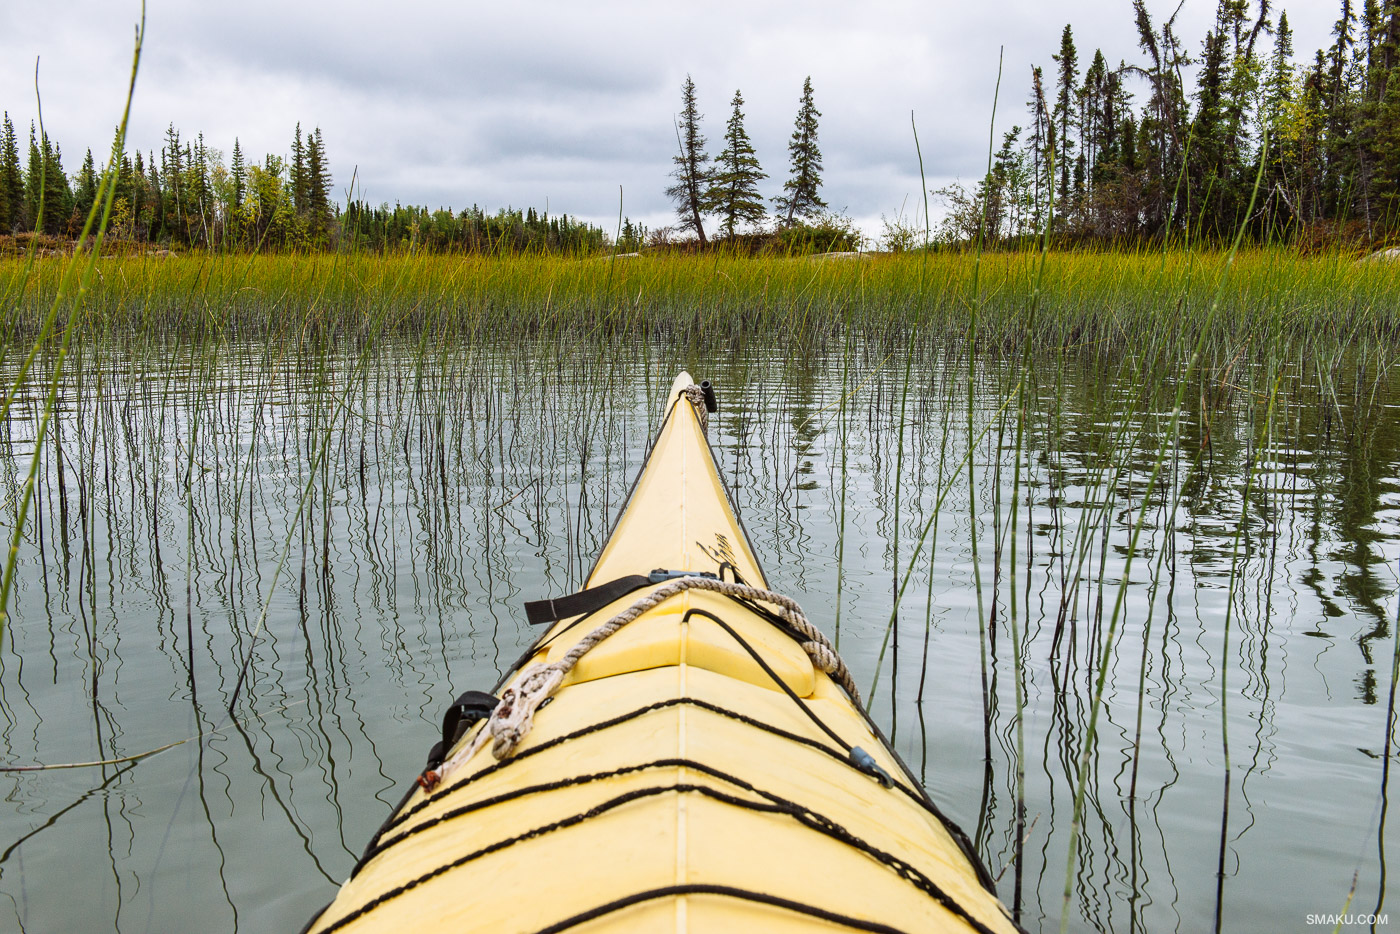 Kayaking on Blachford Lake.